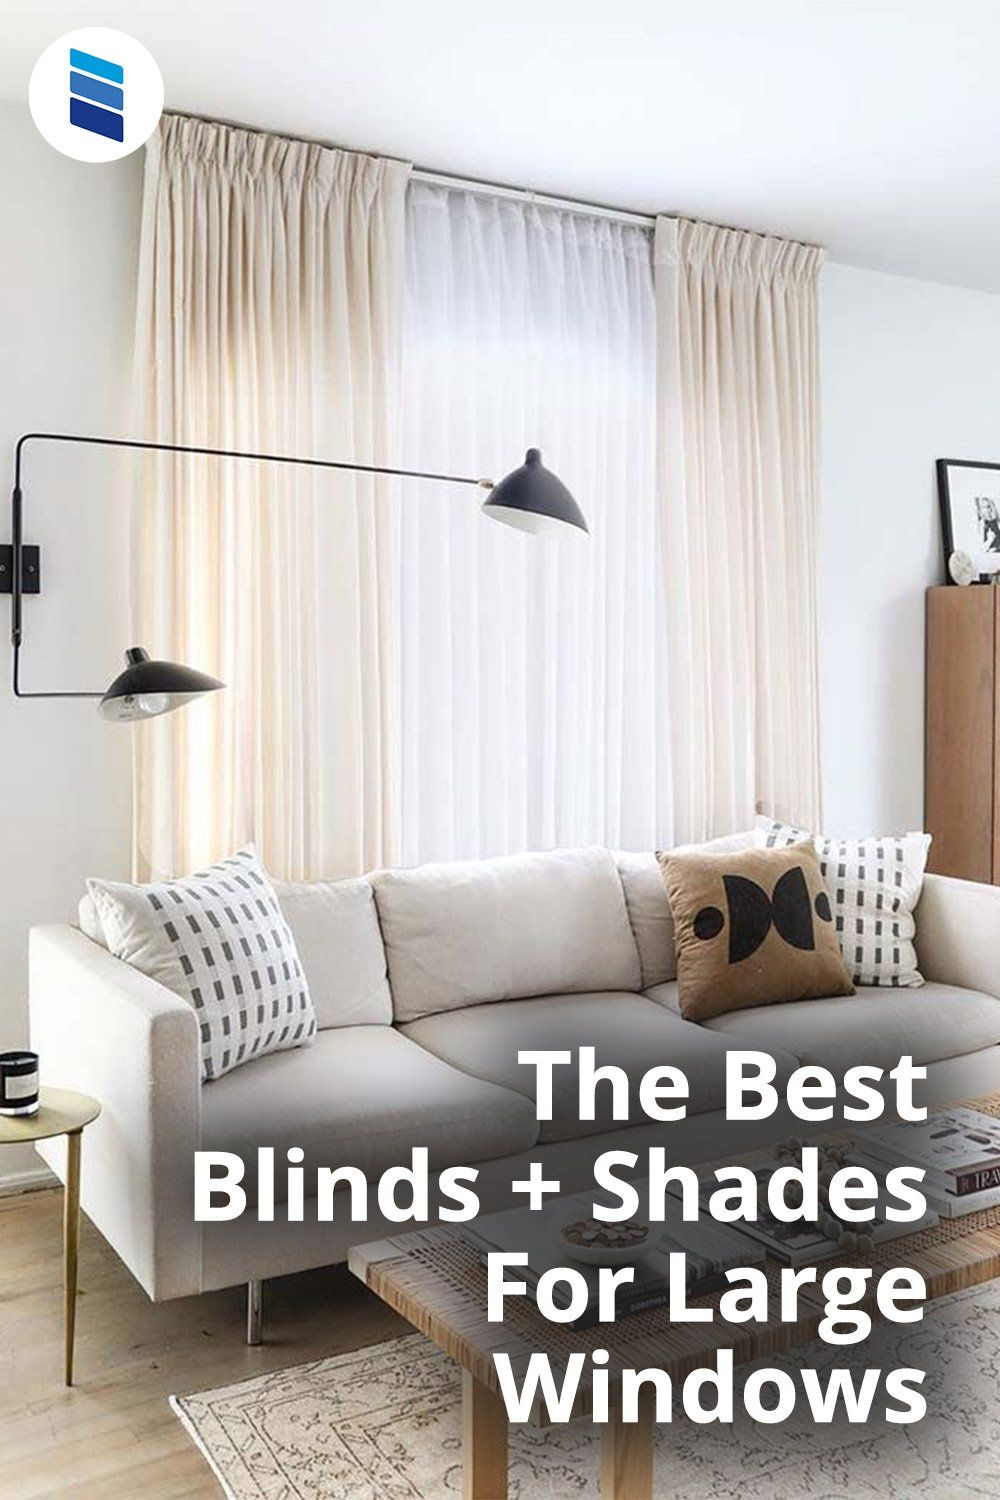 The Best Window Treatments For Large Windows Blinds Com In 2021 Curtains Living Room Modern Living Room Decor Curtains Window Treatments Living Room